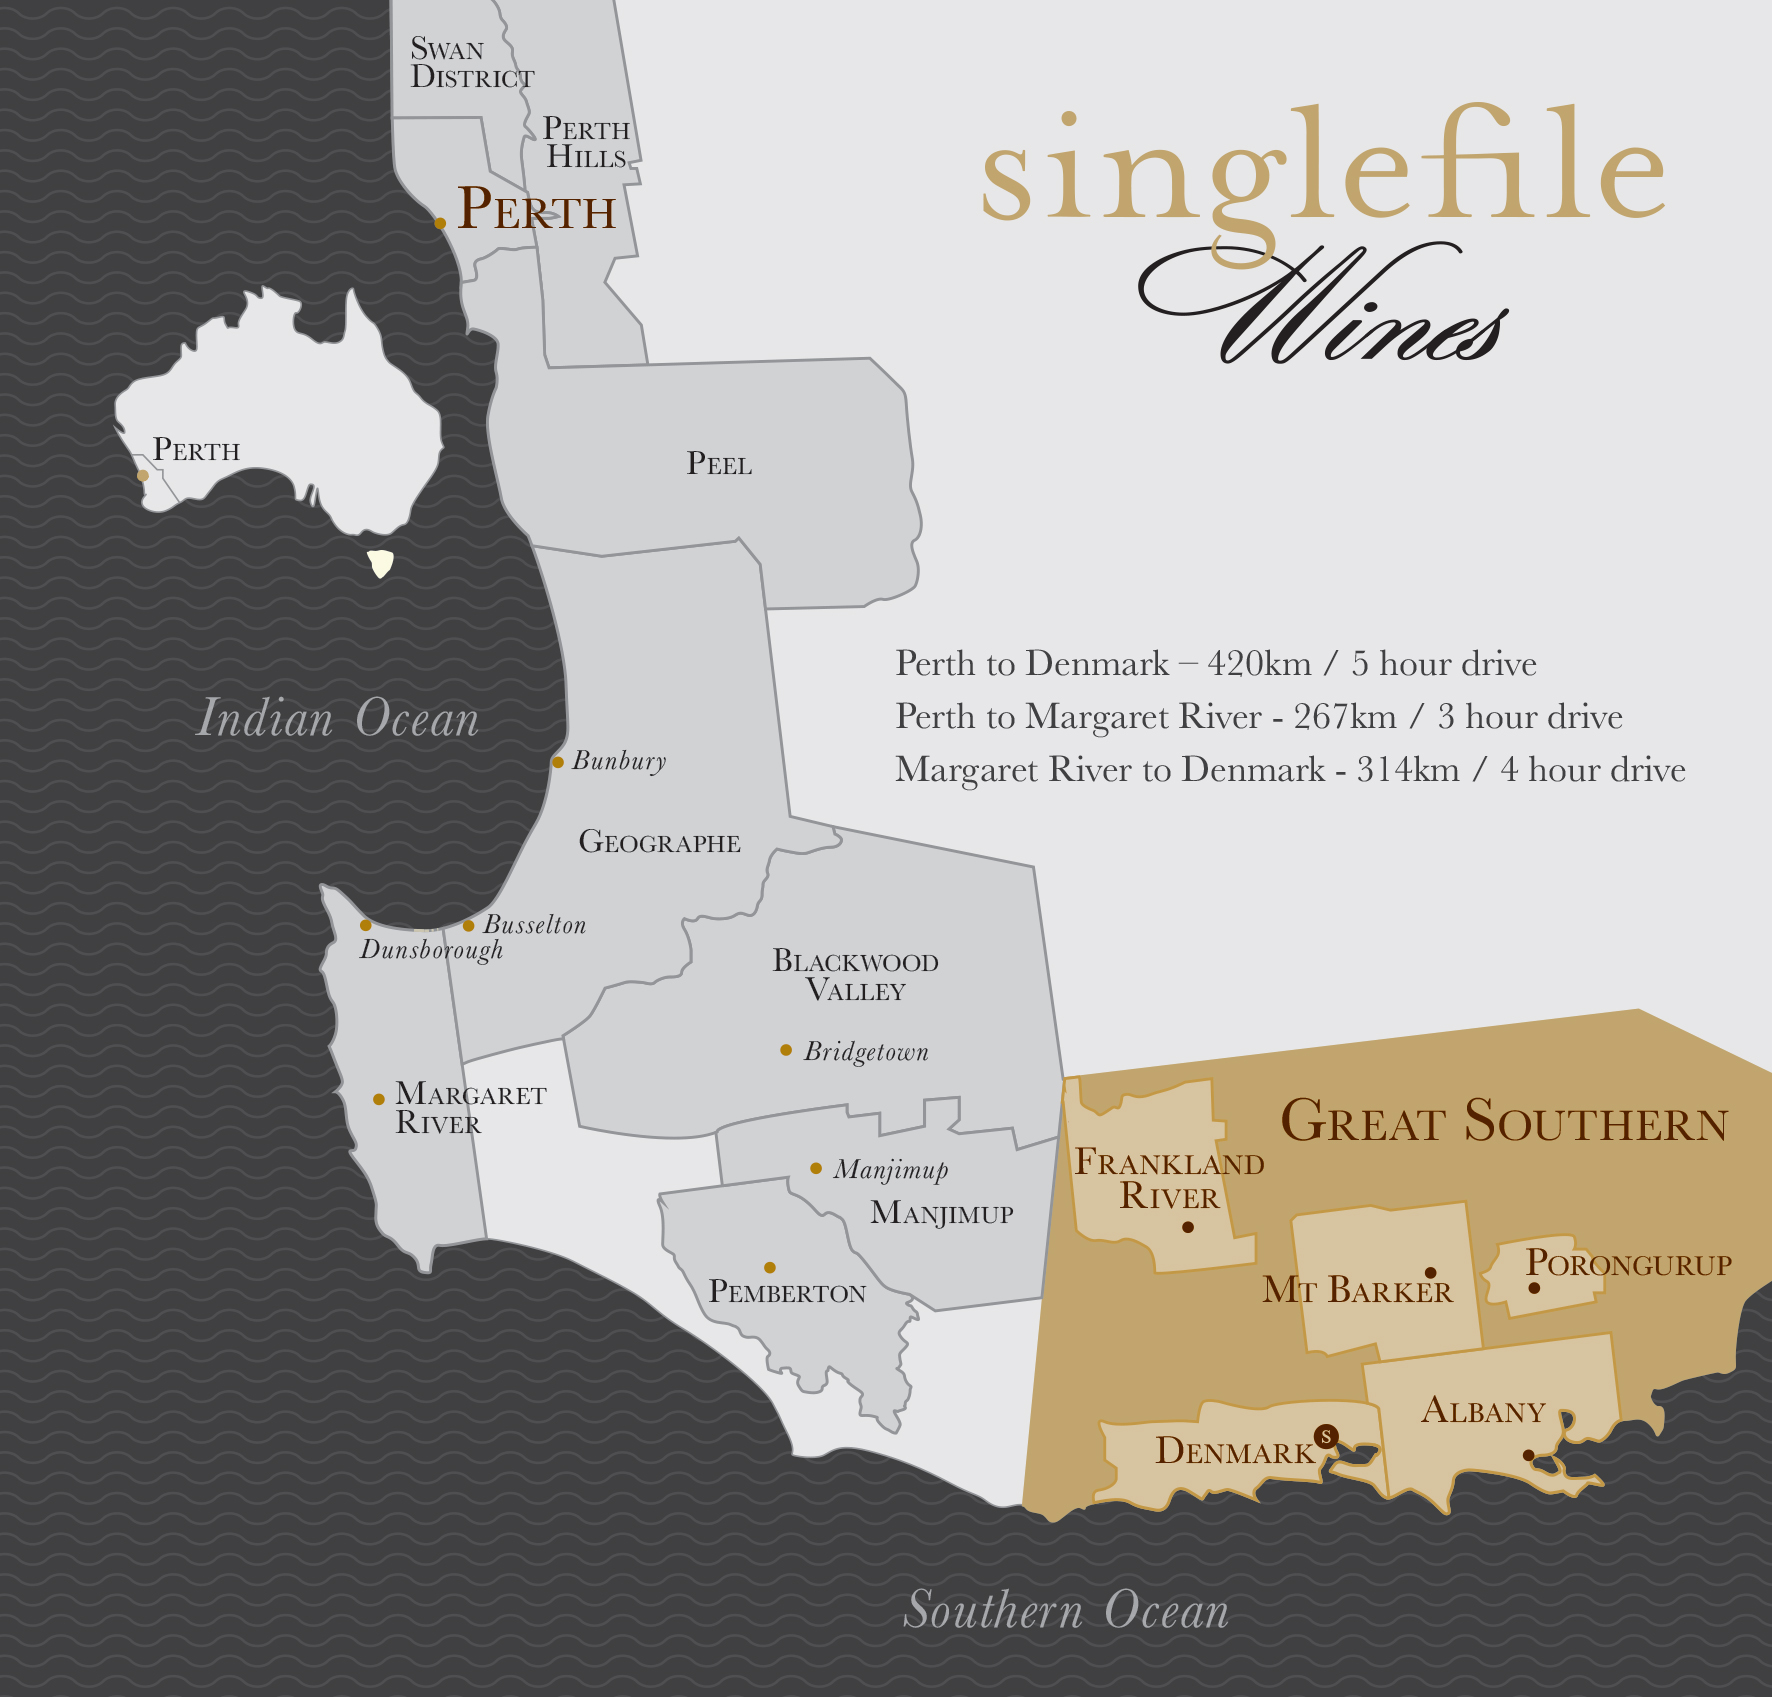 Singlefile Wines Great Southern Wine Region - Map of the southern region of the us